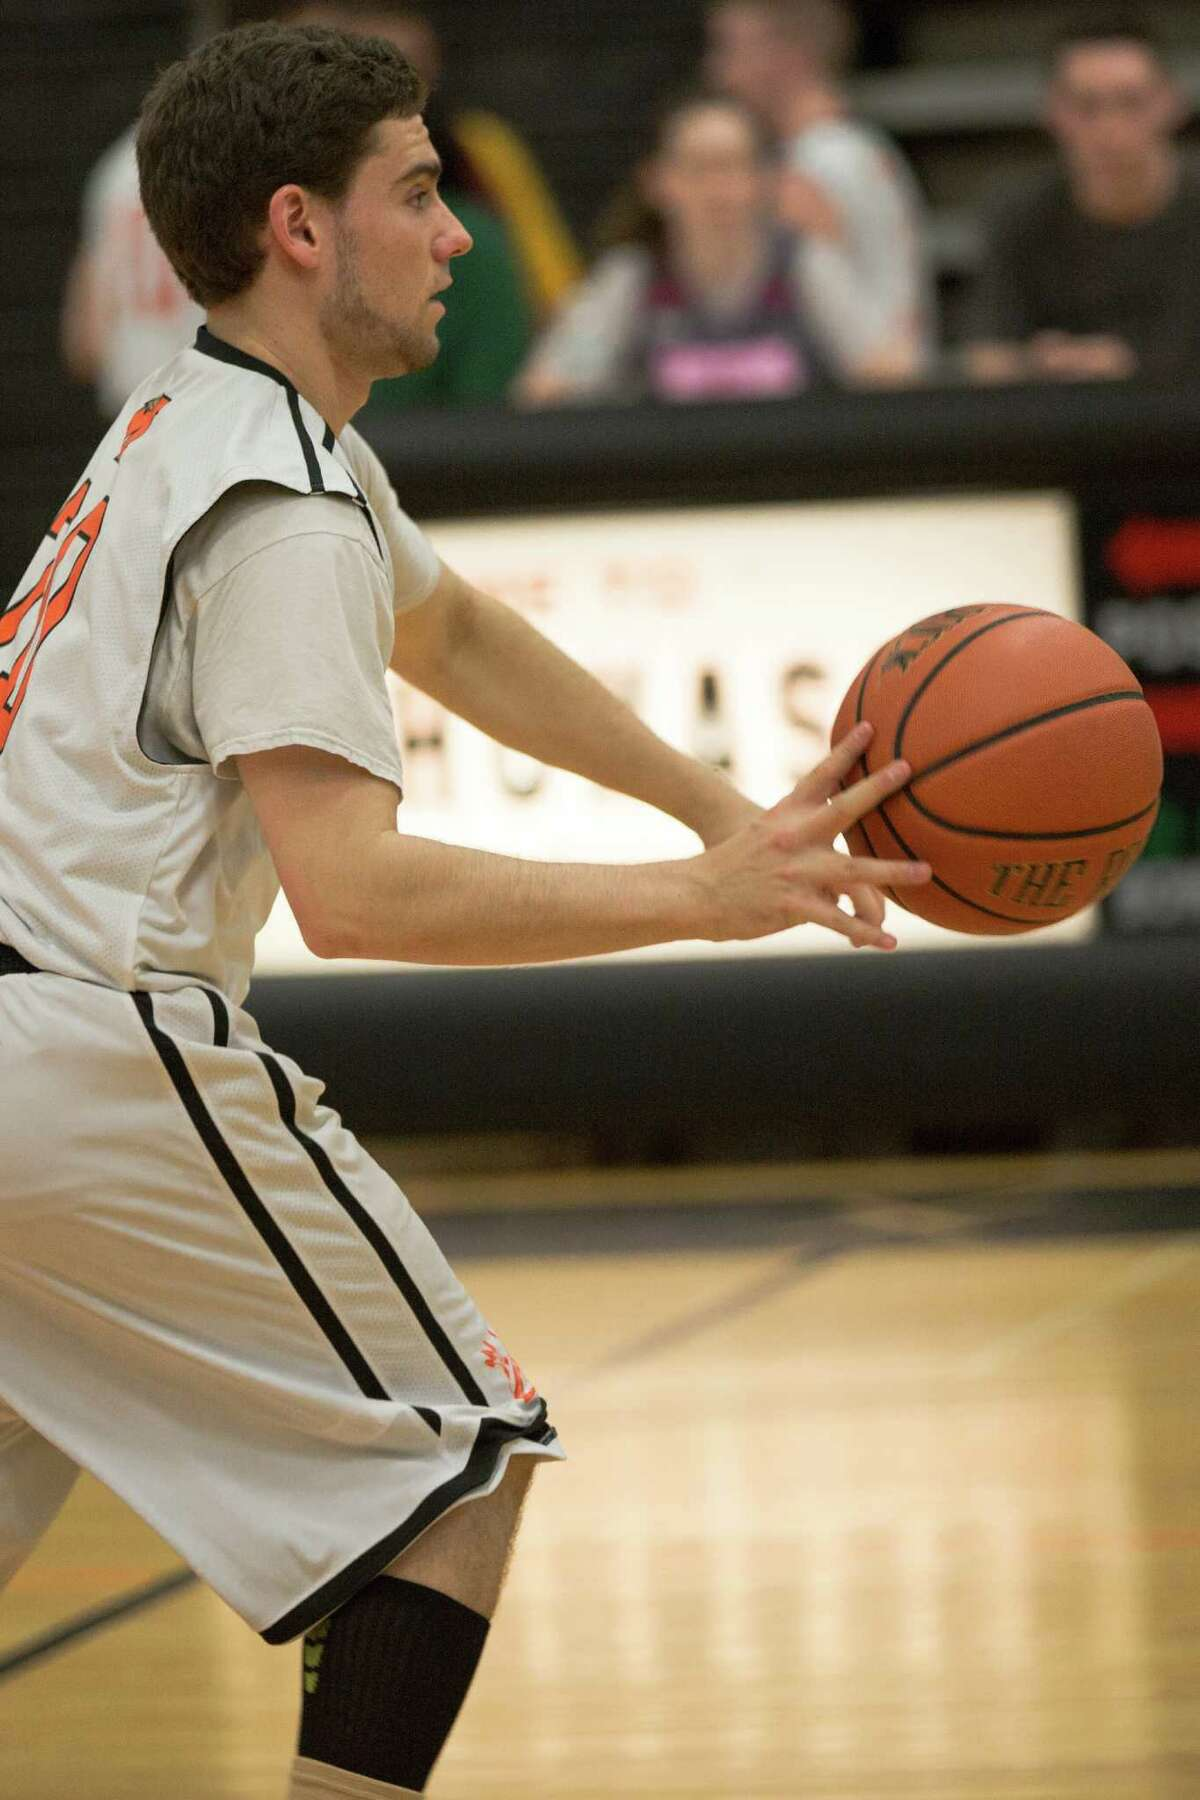 Cameron Kelly carries the ball across the court at the Mohonasen Unified Basketball game against Colonie High's Special Education Basketball league on May 18, 2015. (Karla Cote / Special to the Times Union)